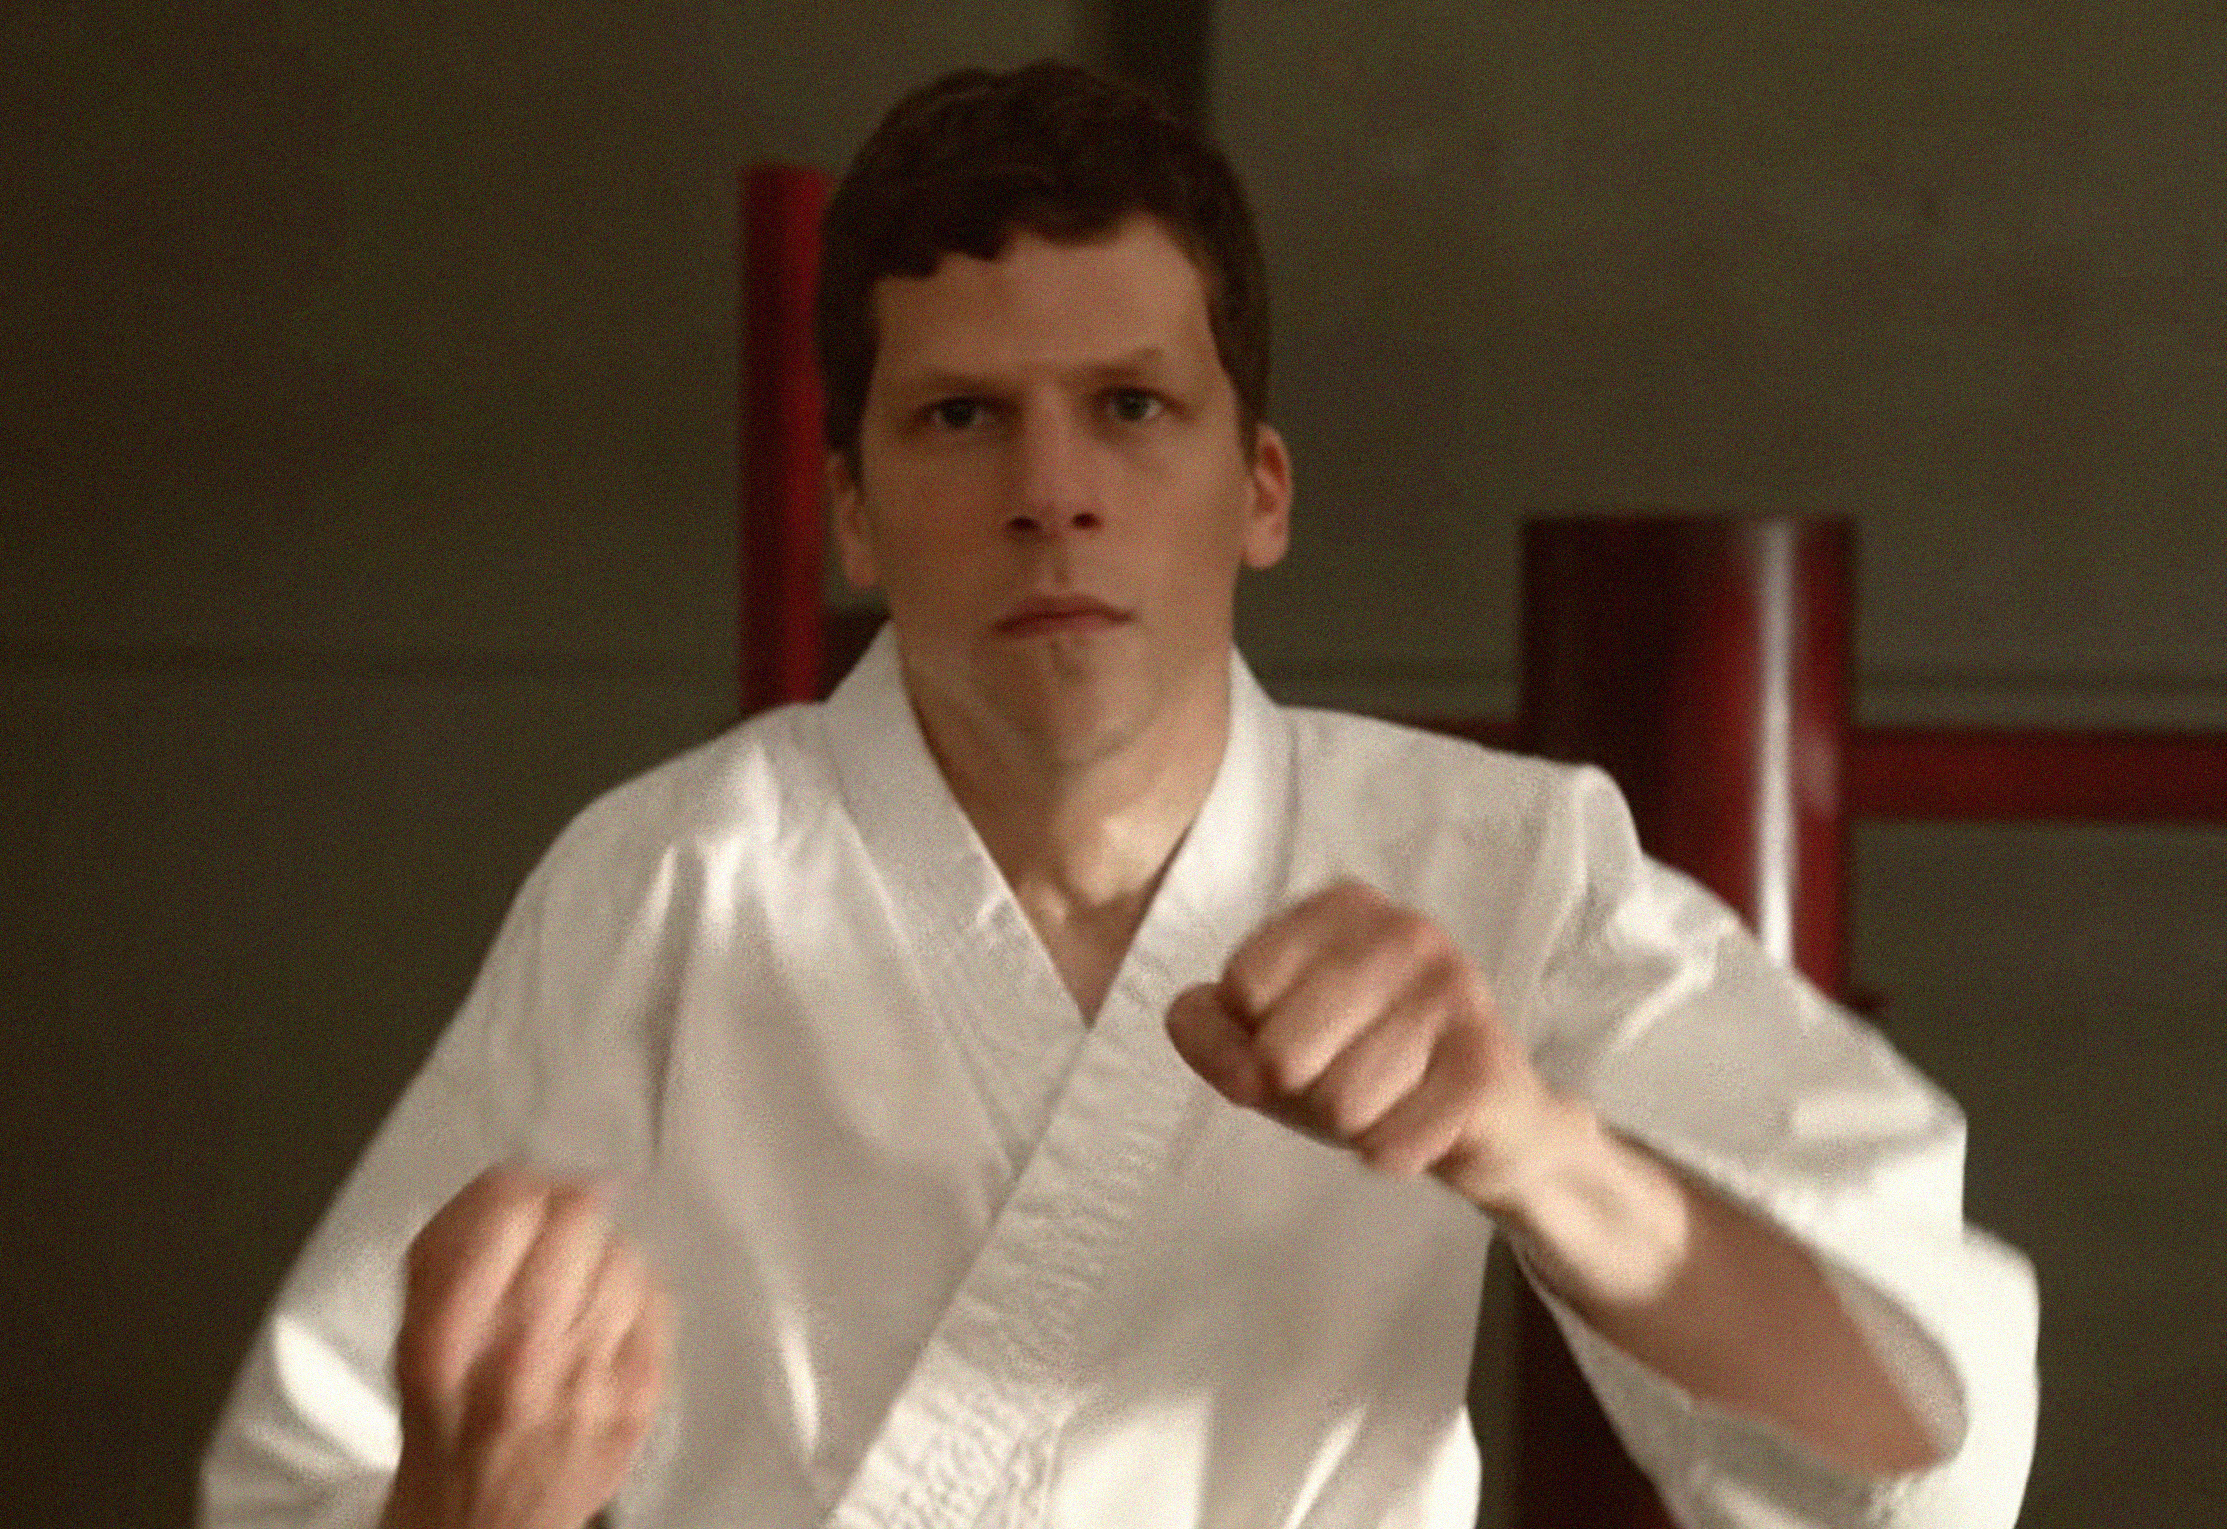 The Art of Self-Defense star Jesse Eisenberg discusses toxic masculinity and why he loved playing Lex Luthor